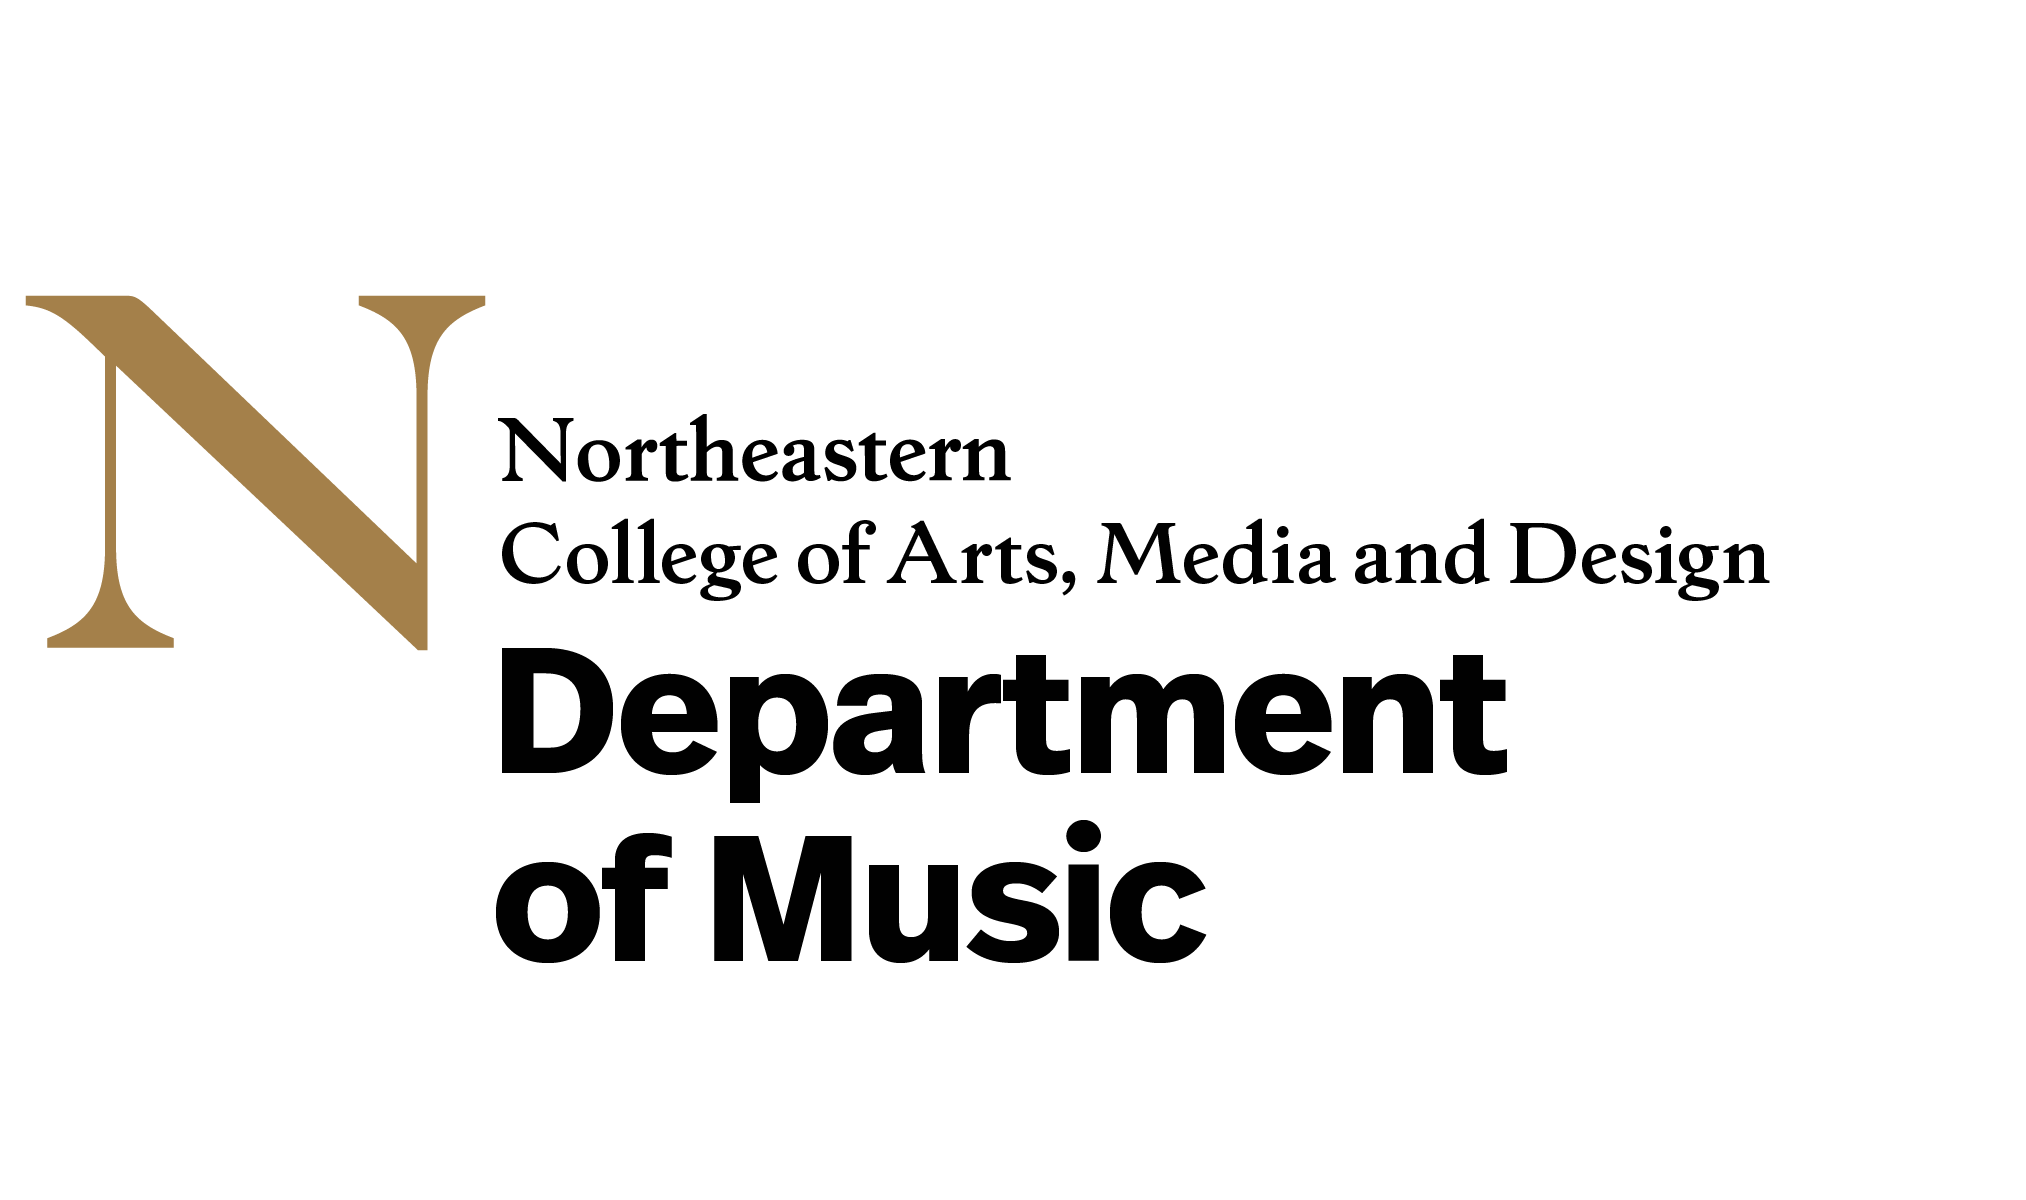 NU_CAMD_Dept of Music_MonoN_03_GB.png